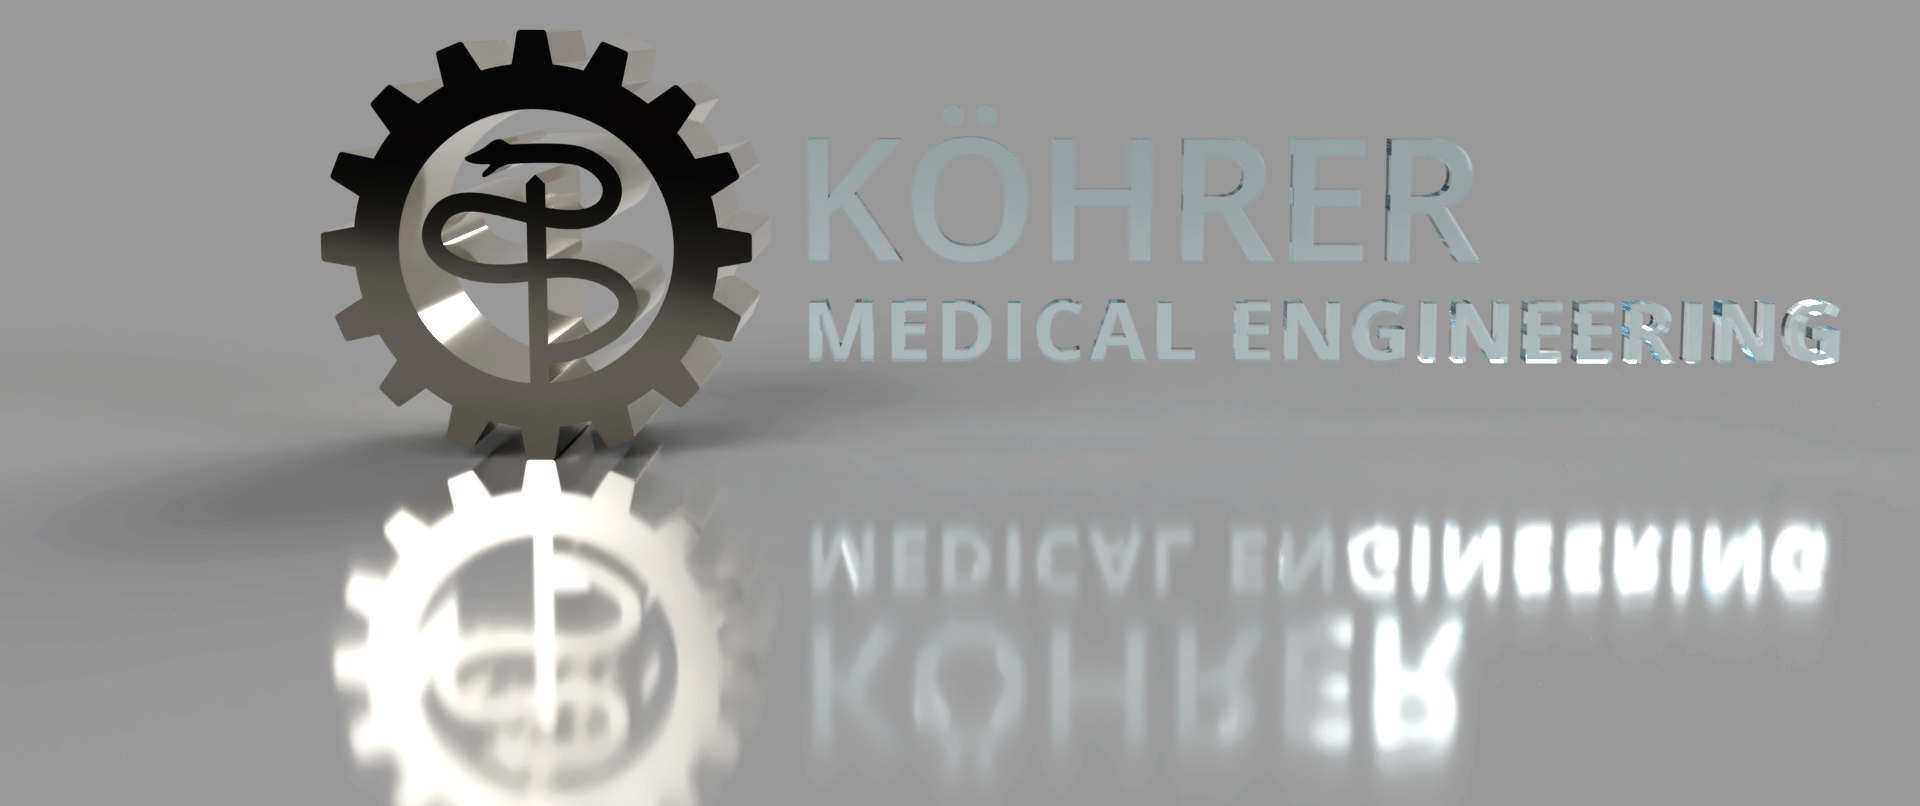 Köhrer Medical Engineering